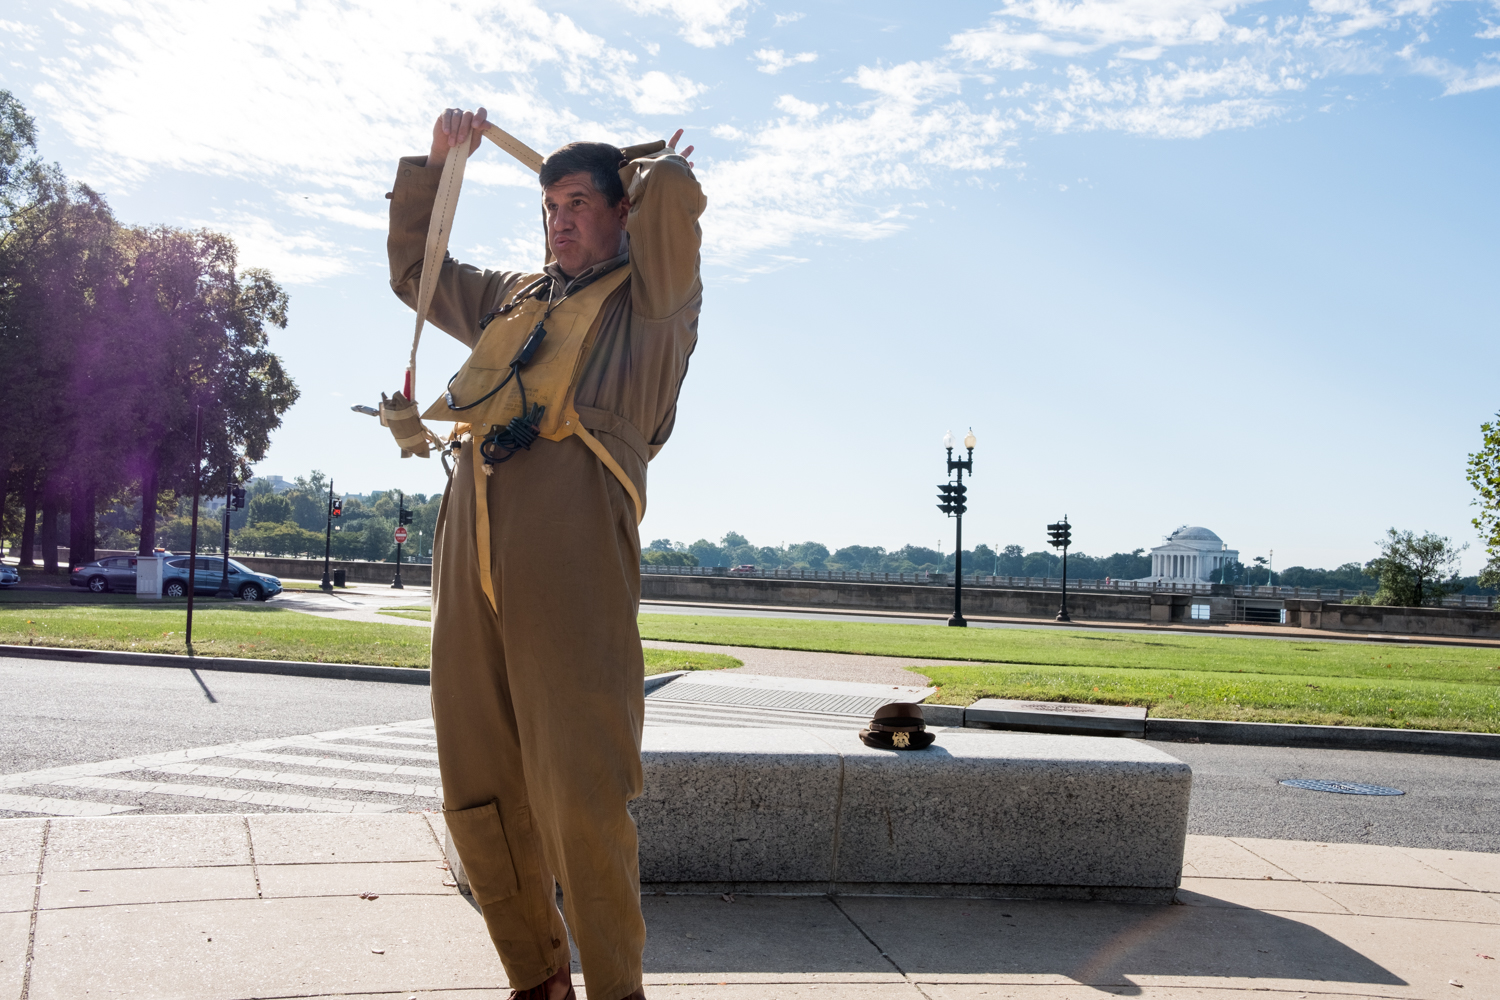 Phil Escobar, a war re-enactor with the Allied Airmen's Preservation Society, dons his military clothing near the World War II Memorial in Washington, D.C. during an Honor Flight event. Honor Flight is when veterans from around America visit the memorials on The National Mall.